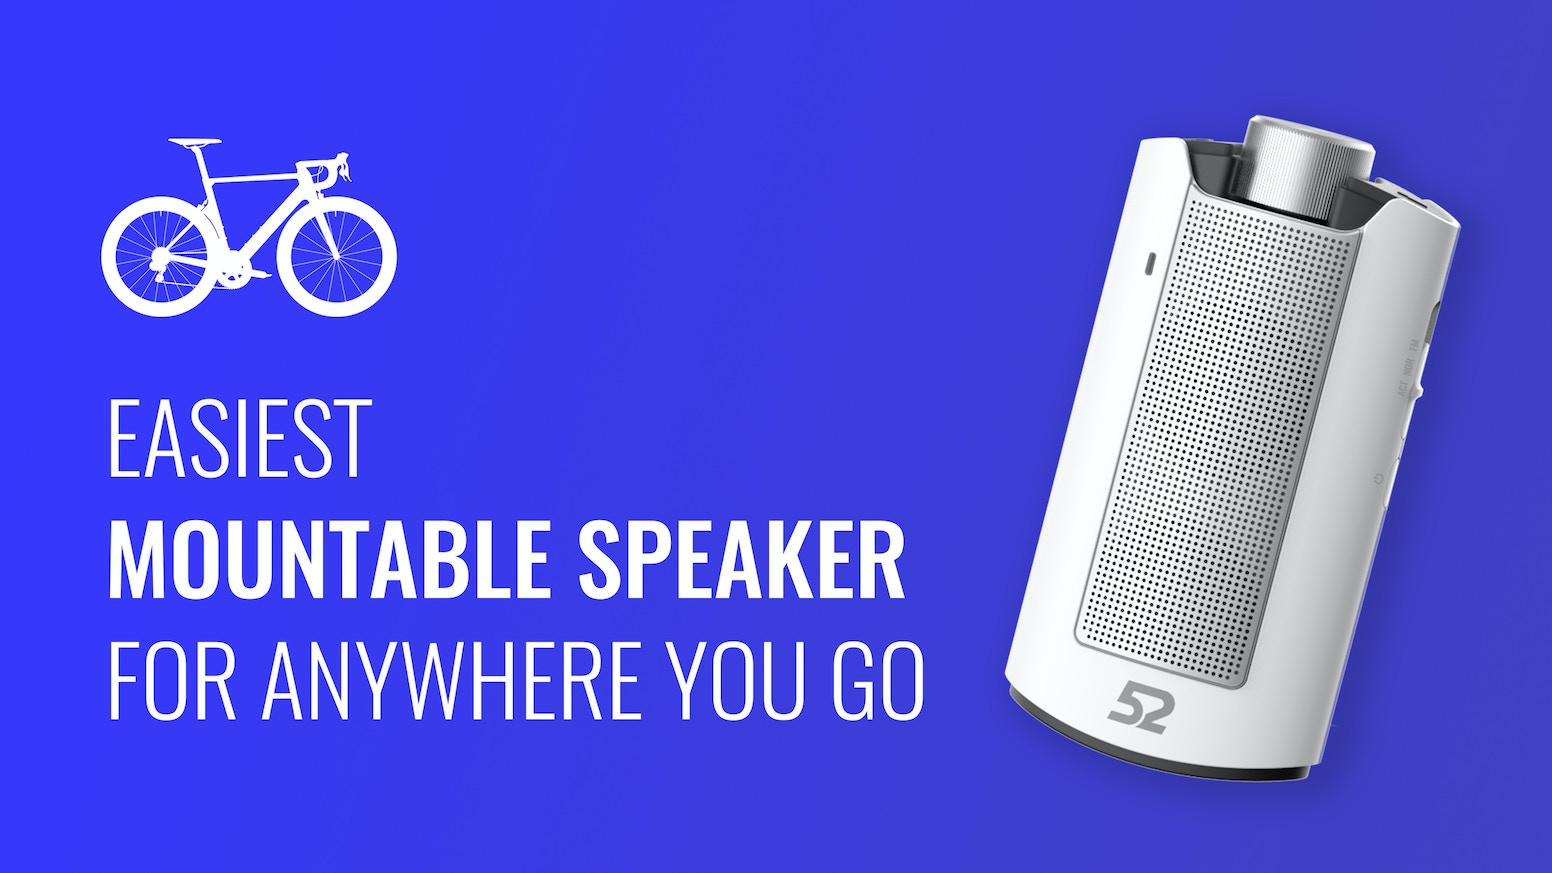 52 SPEAKER incorporates clear, crisp sound into the timeless design of a whiskey flask. Perfect for cyclists and on-the-go adventurers.